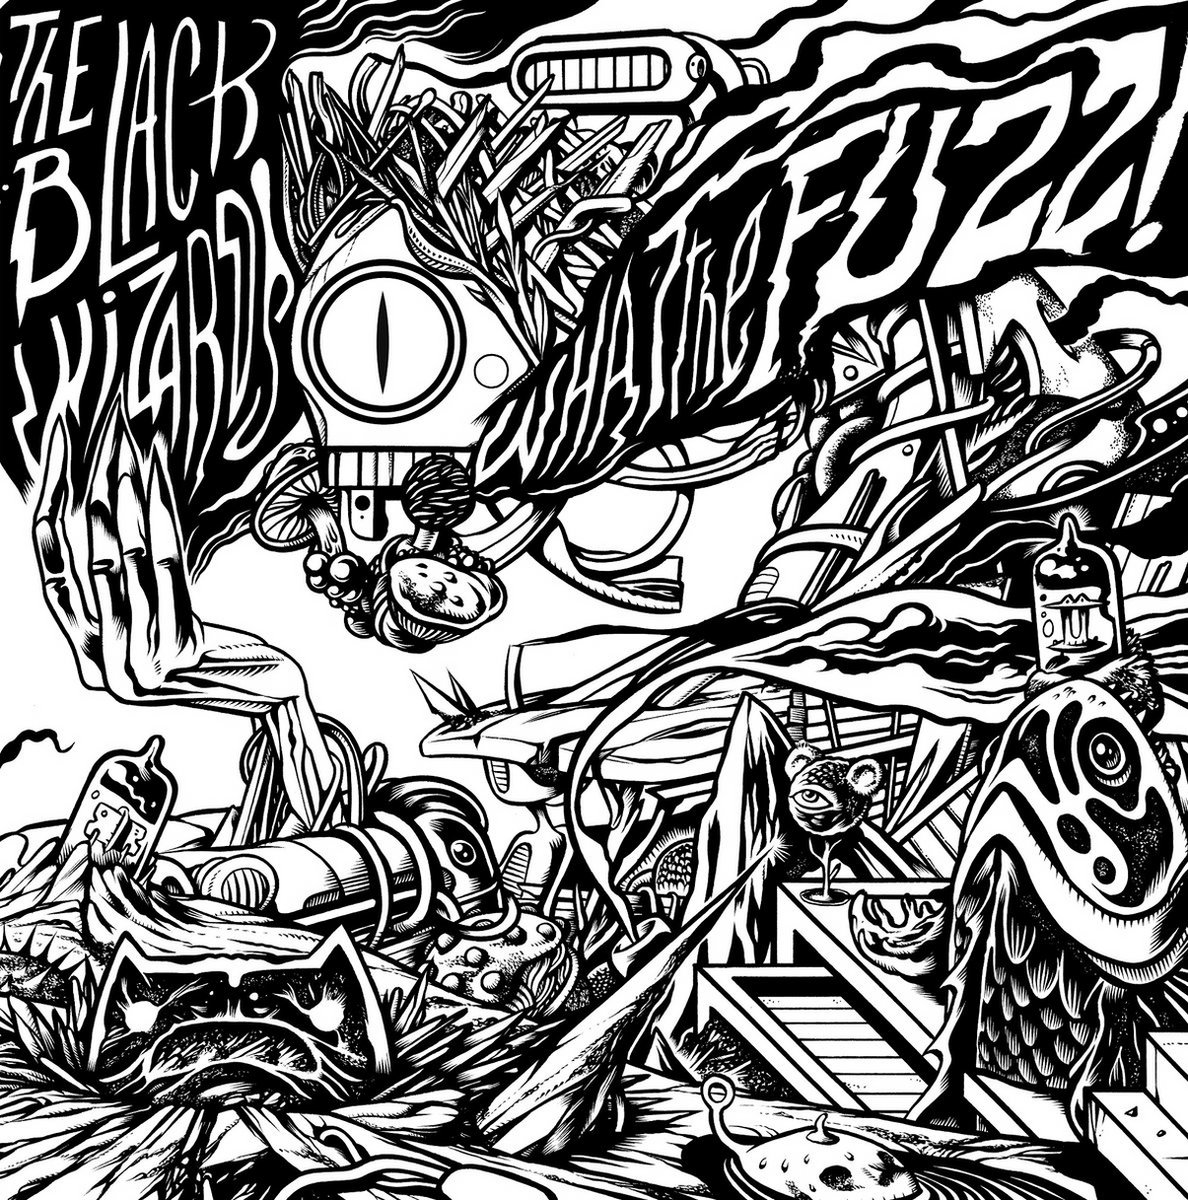 the black wizards what the fuzz ragingplanet Double Vision Album 12 black vinyl deluxe gatefold sleeve artwork by jo o maio pinto includes unlimited streaming of the black wizards what the fuzz via the free